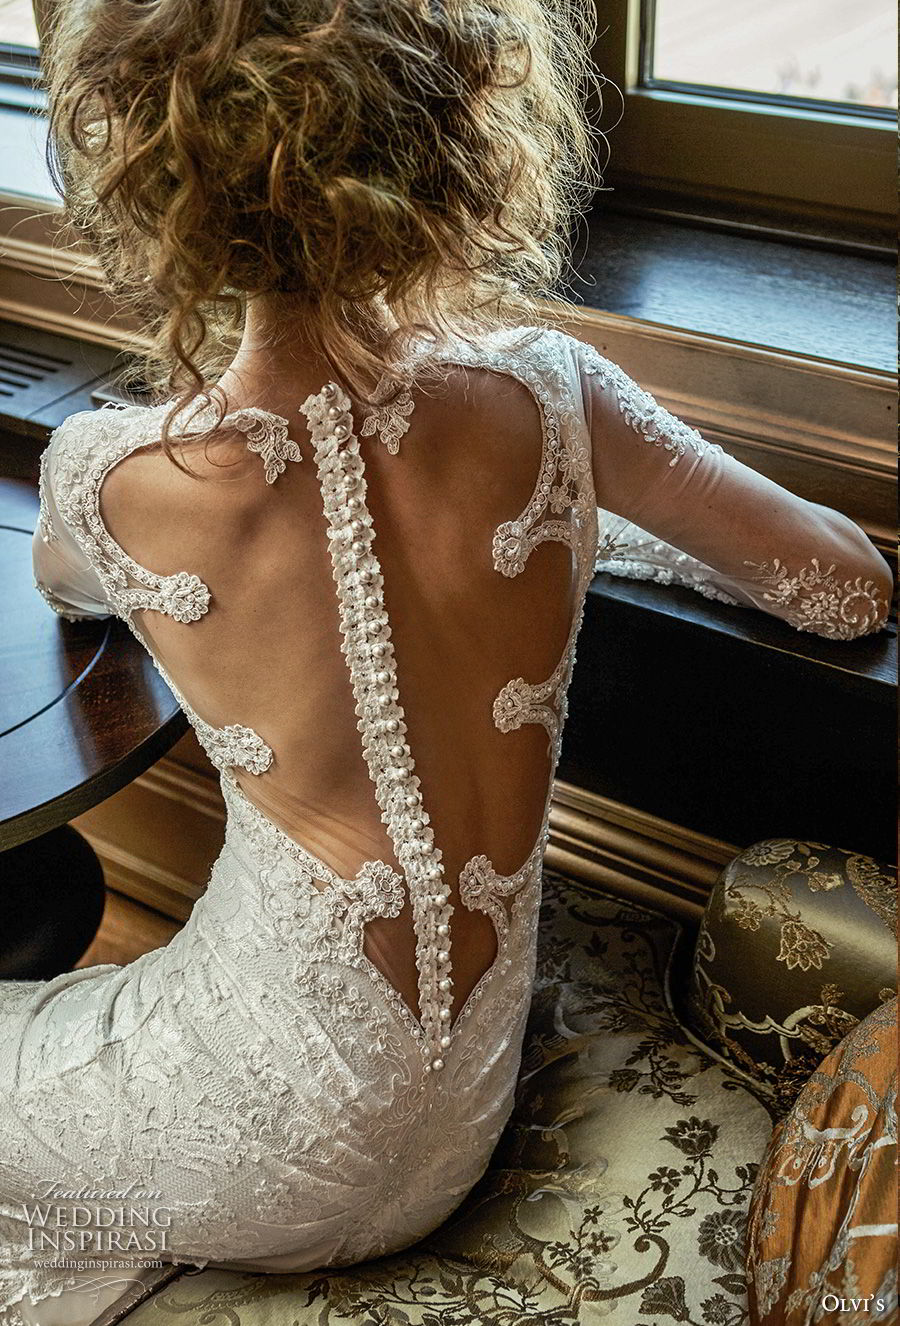 olvi 2019 bridal long sleeves sheer bateau sweetheart neckline full embellishment elegant vintage fit and flare wedding dress sheer button back short train (18) zbv